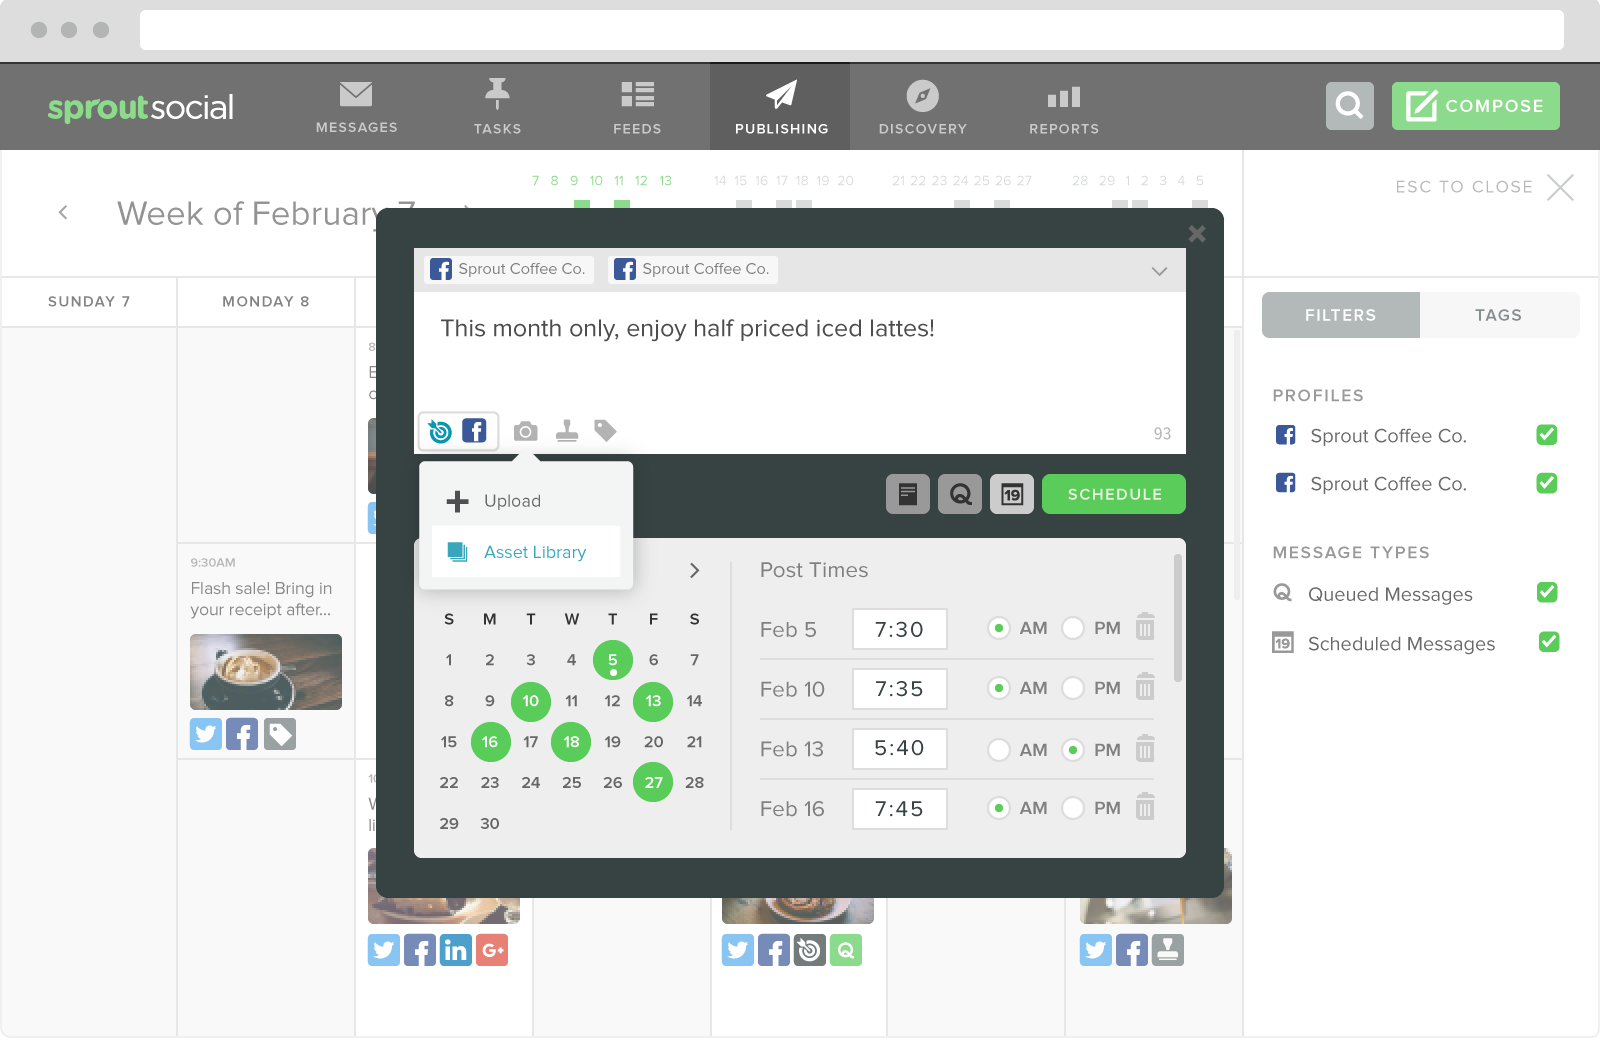 Sprout Social allows you to schedule Facebook content